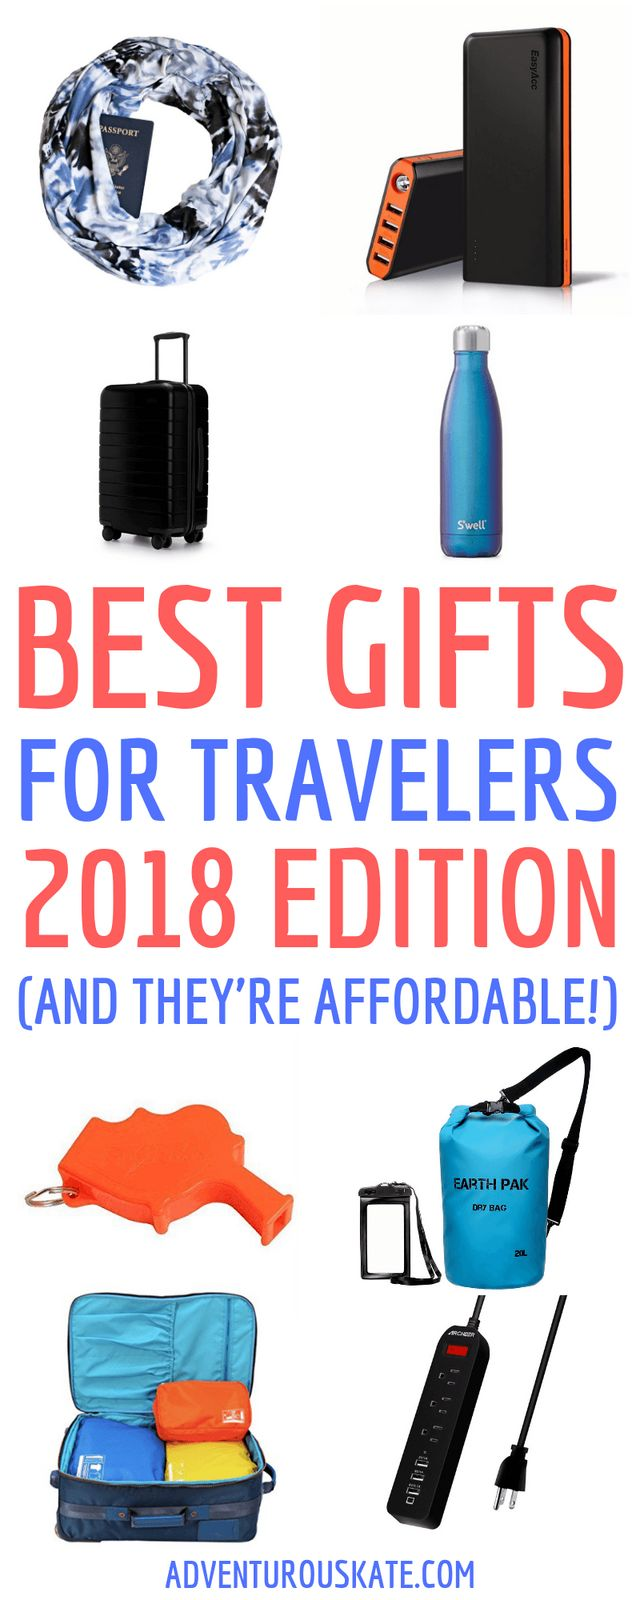 The Best Gifts for Travelers: 2018 Edition | Adventurous Kate